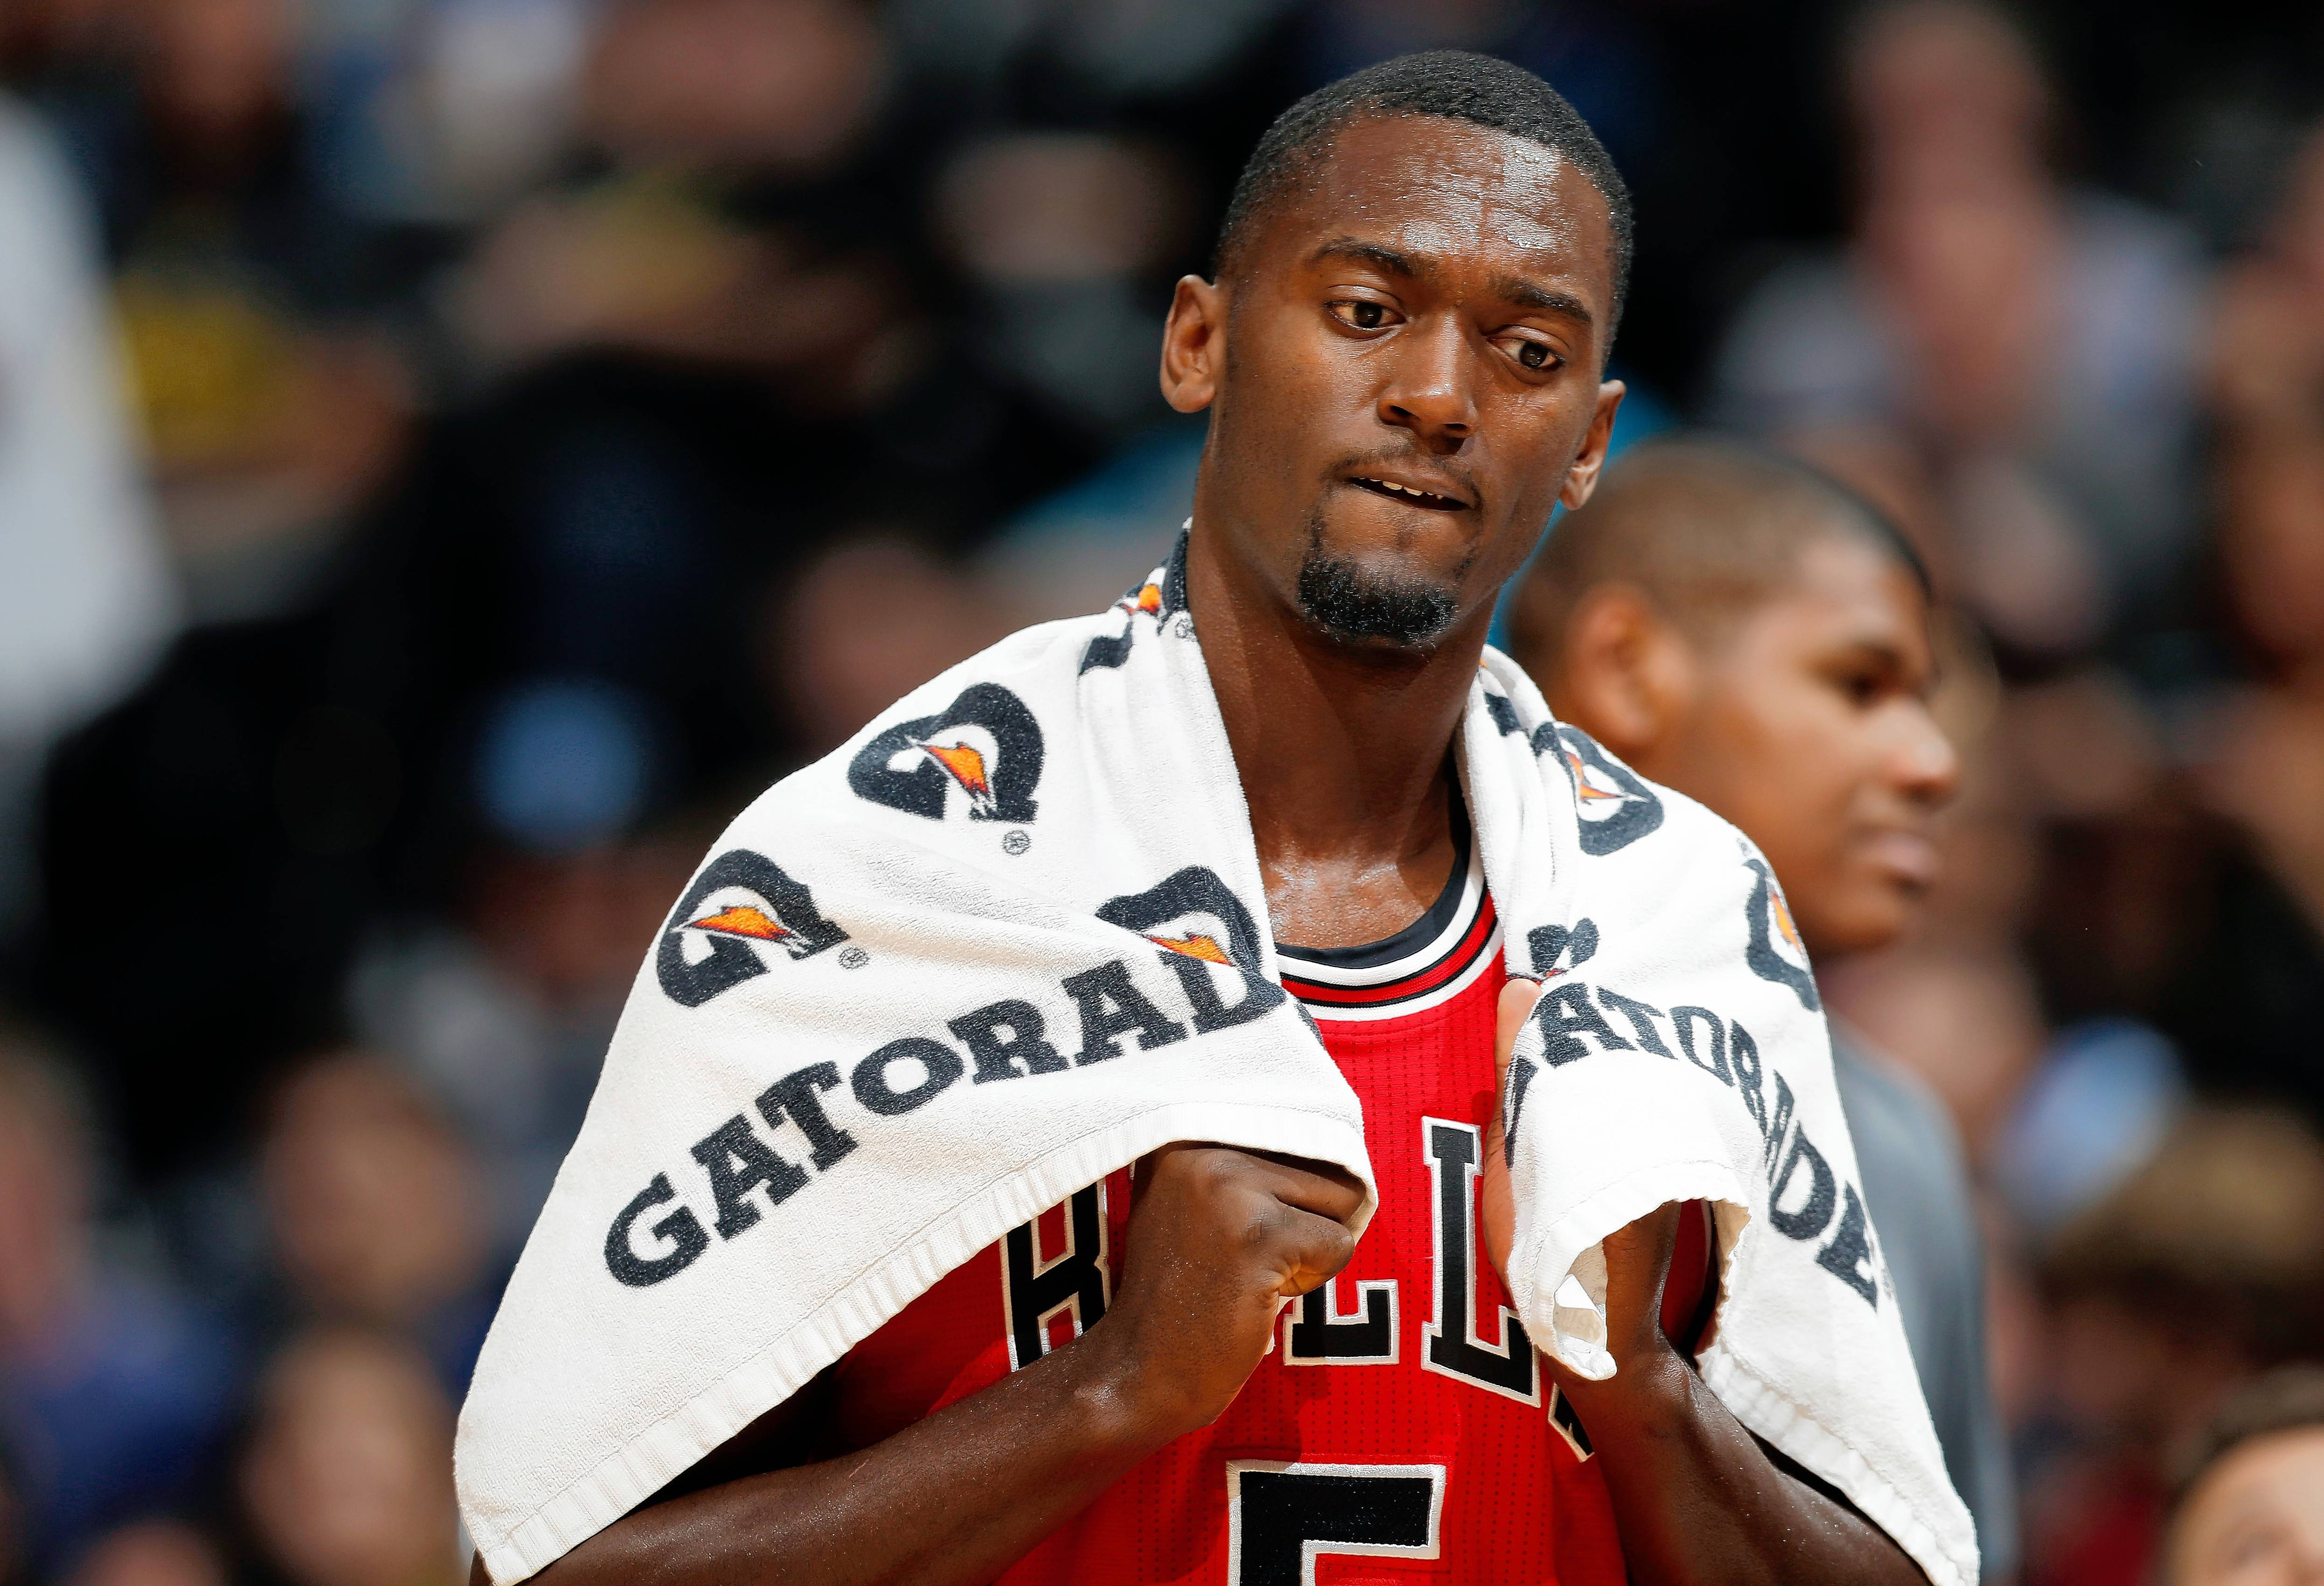 Portis suspension set to end, but awkward situation remains for Chicago Bulls